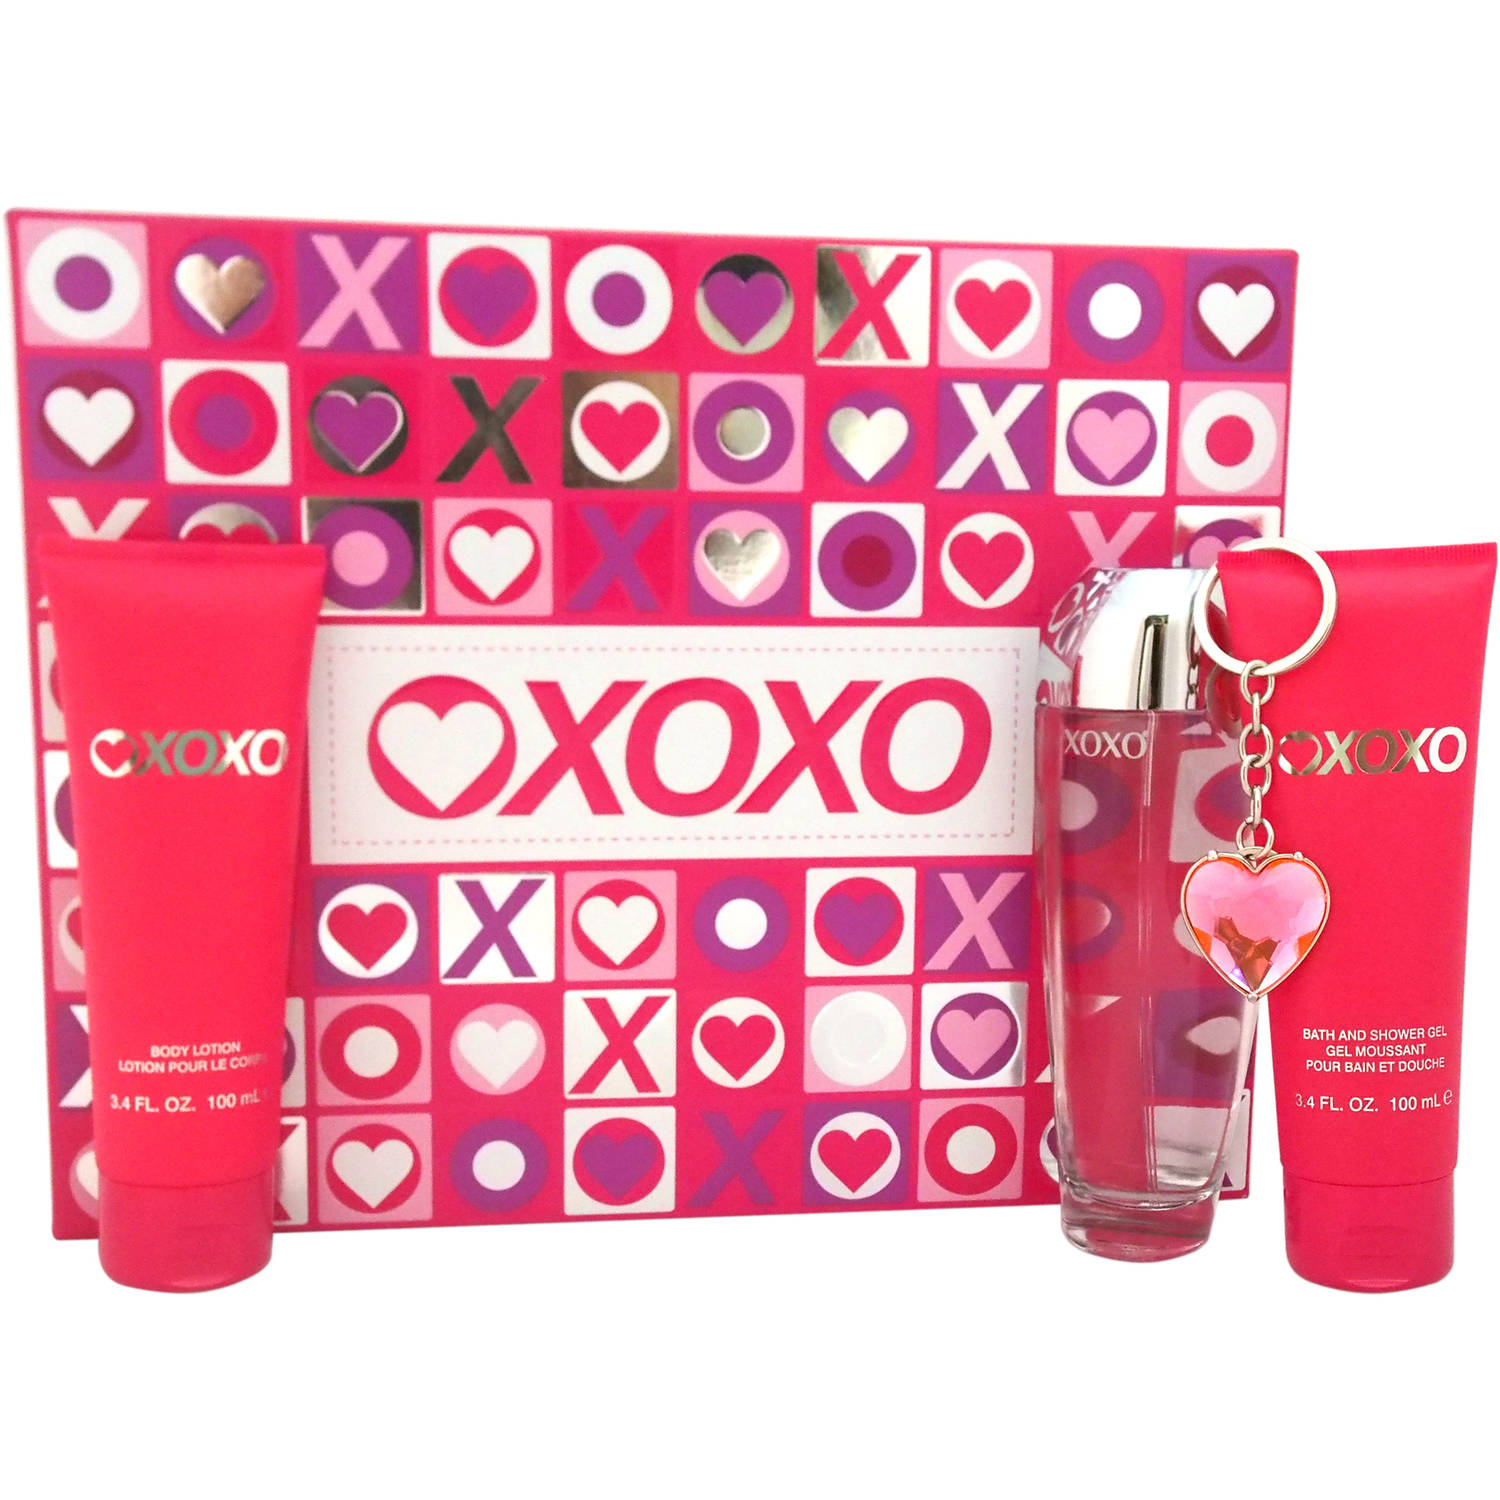 XOXO for Women Fragrance Gift Set, 4 pc